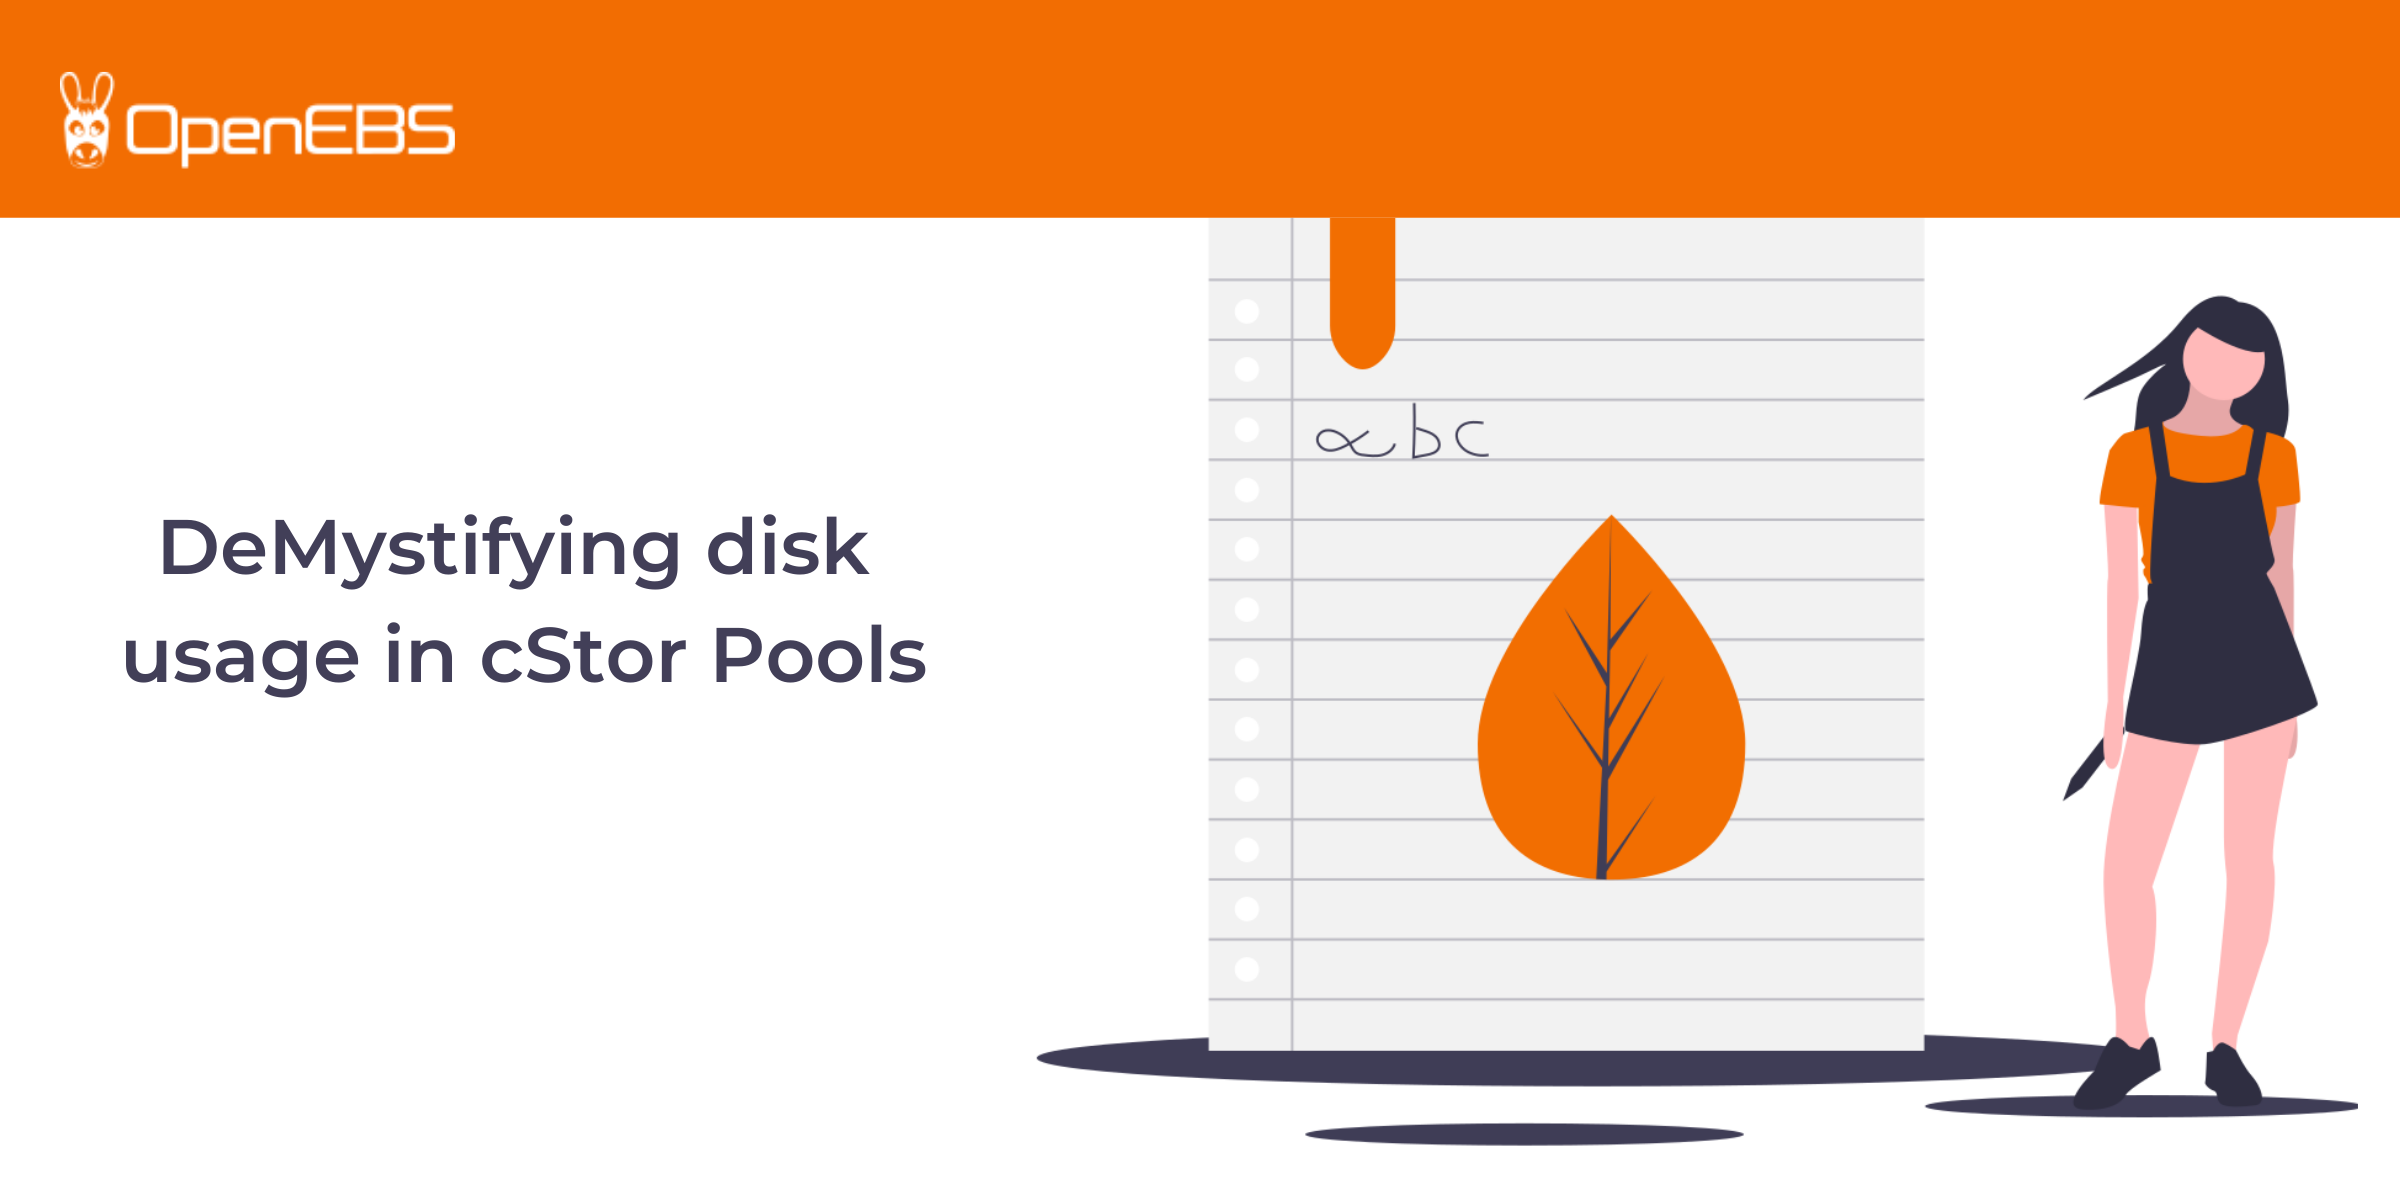 DeMystifying disk usage in cStor Pools